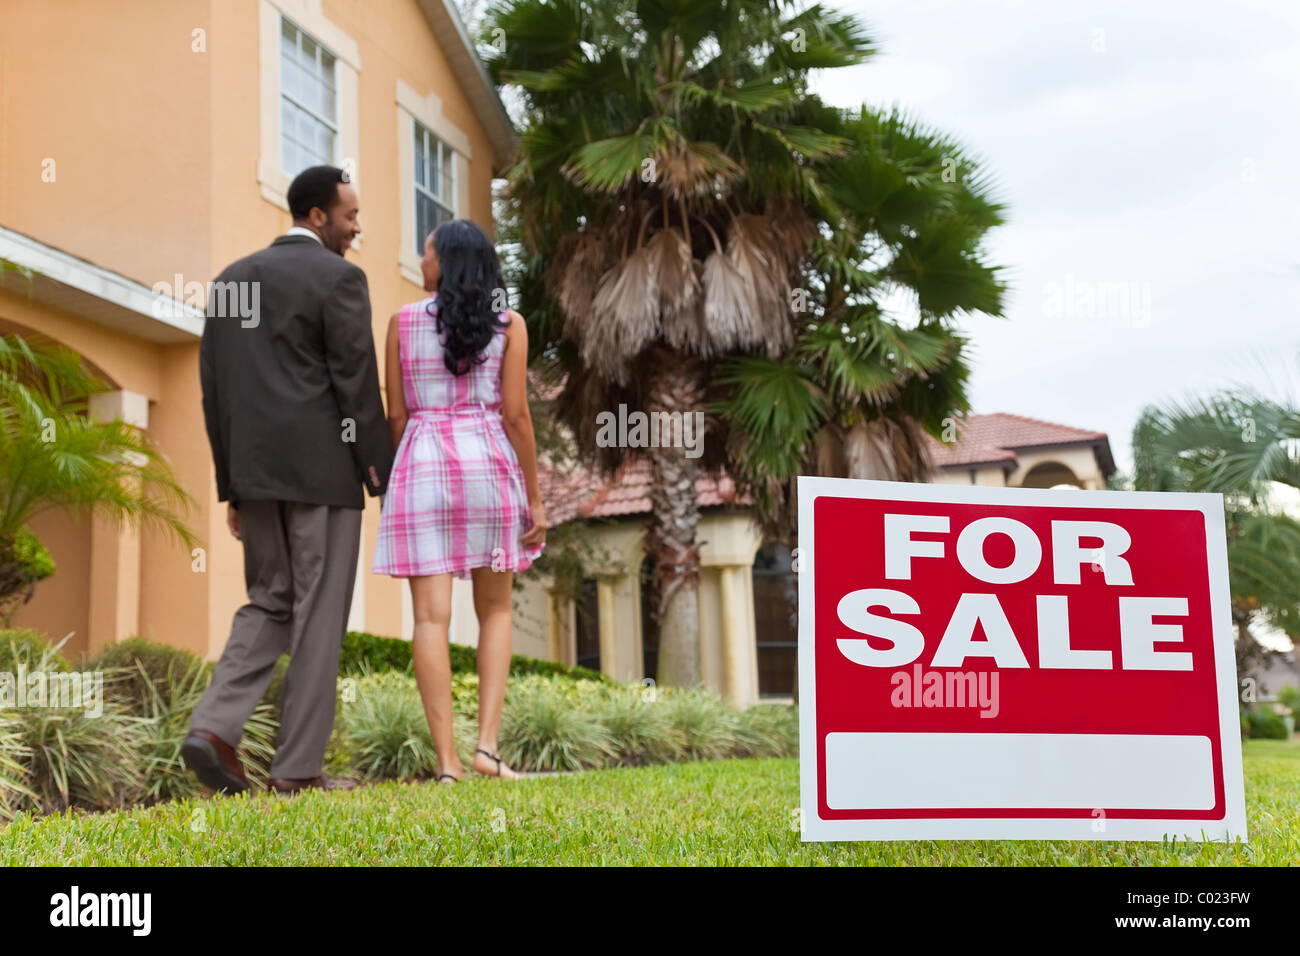 A happy African American man and woman couple house hunting outside a large house with a For Sale sign. - Stock Image